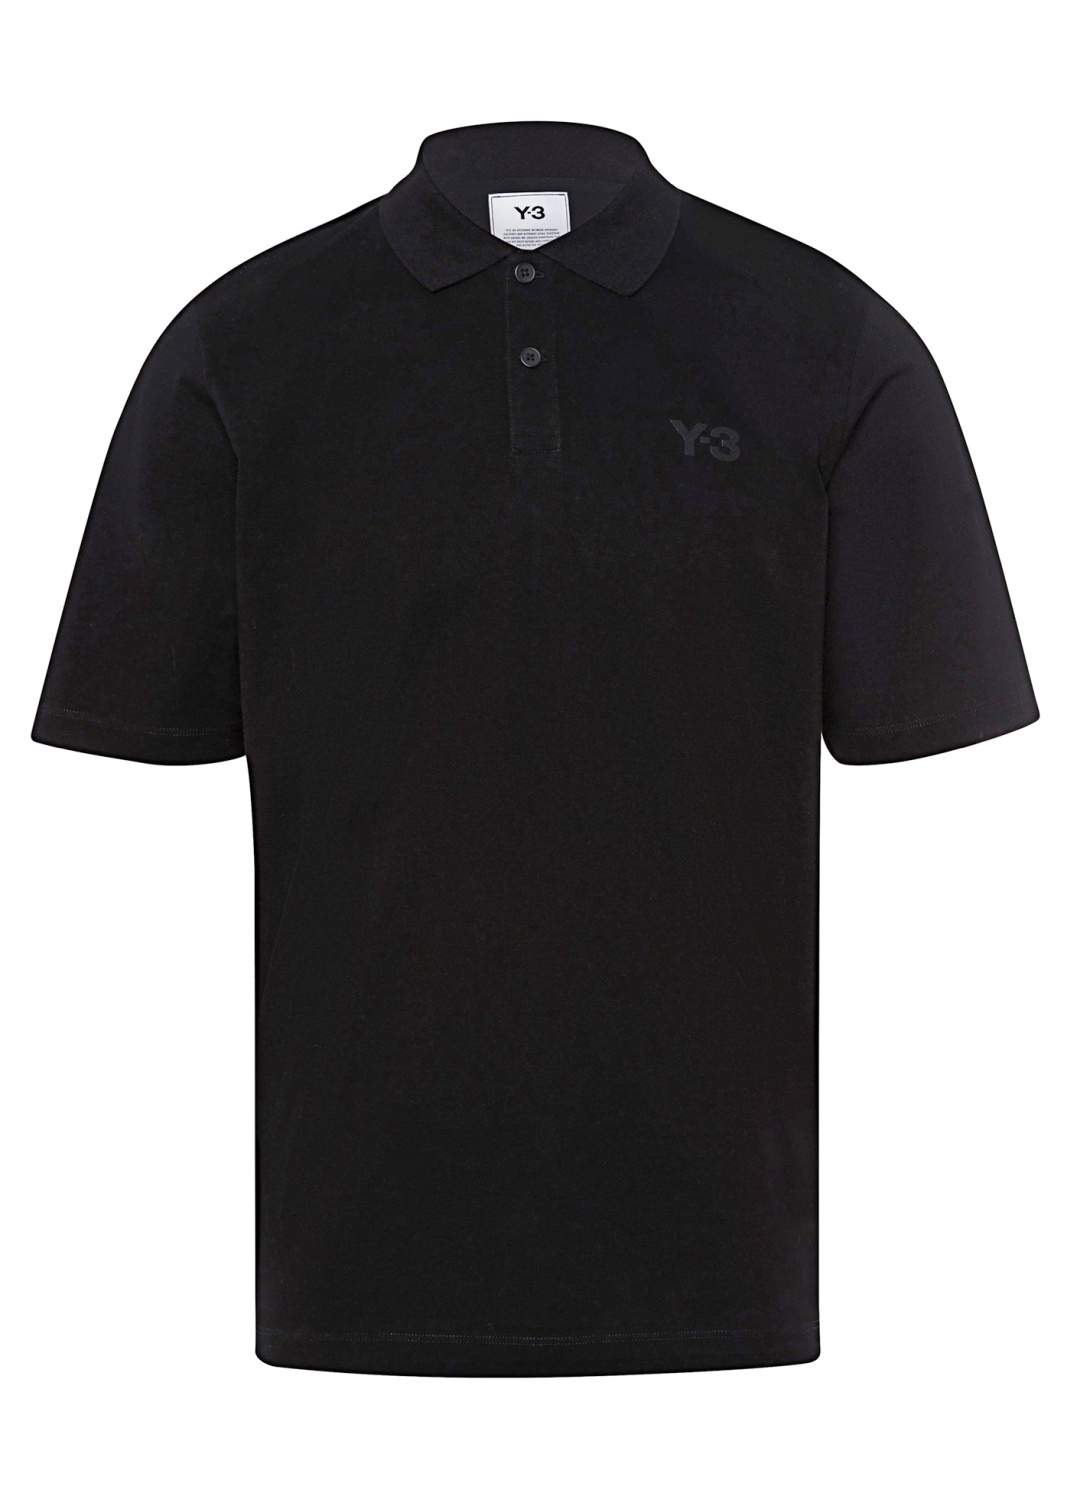 M CL PIQUE POLO image number 0